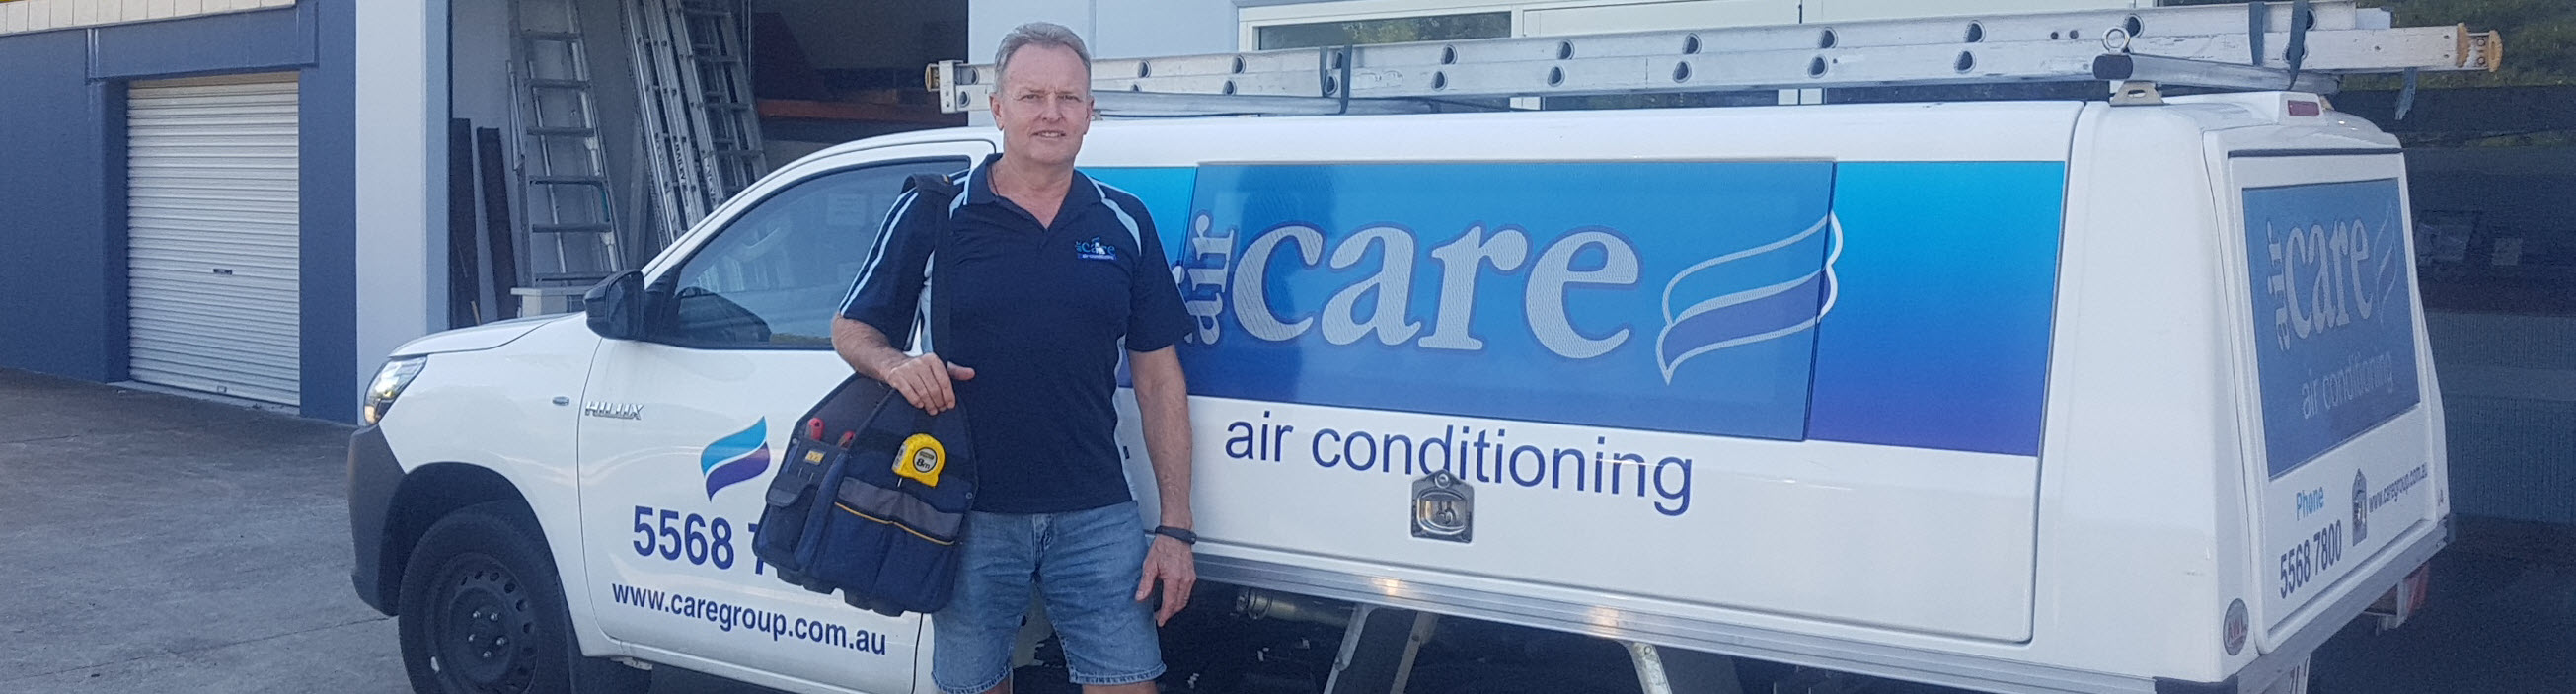 Commercial Air Conditioning Carrara